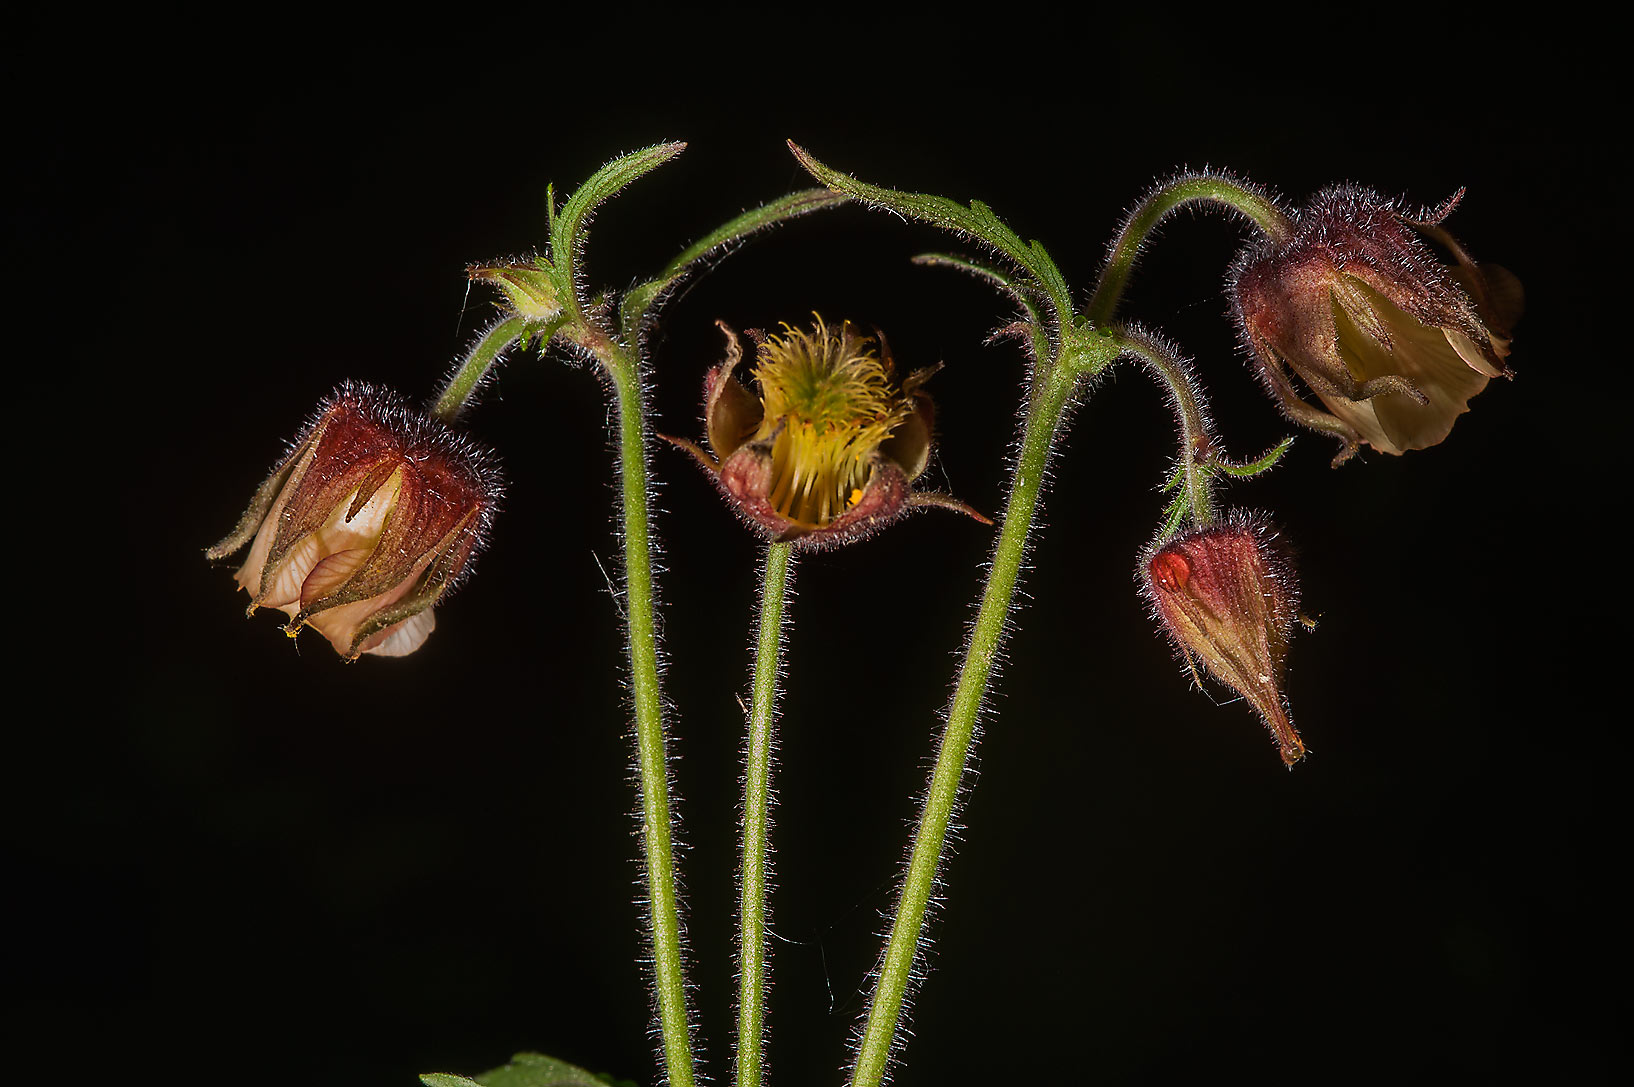 Flower heads of wood avens (Colewort, Geum...north-west from St.Petersburg, Russia